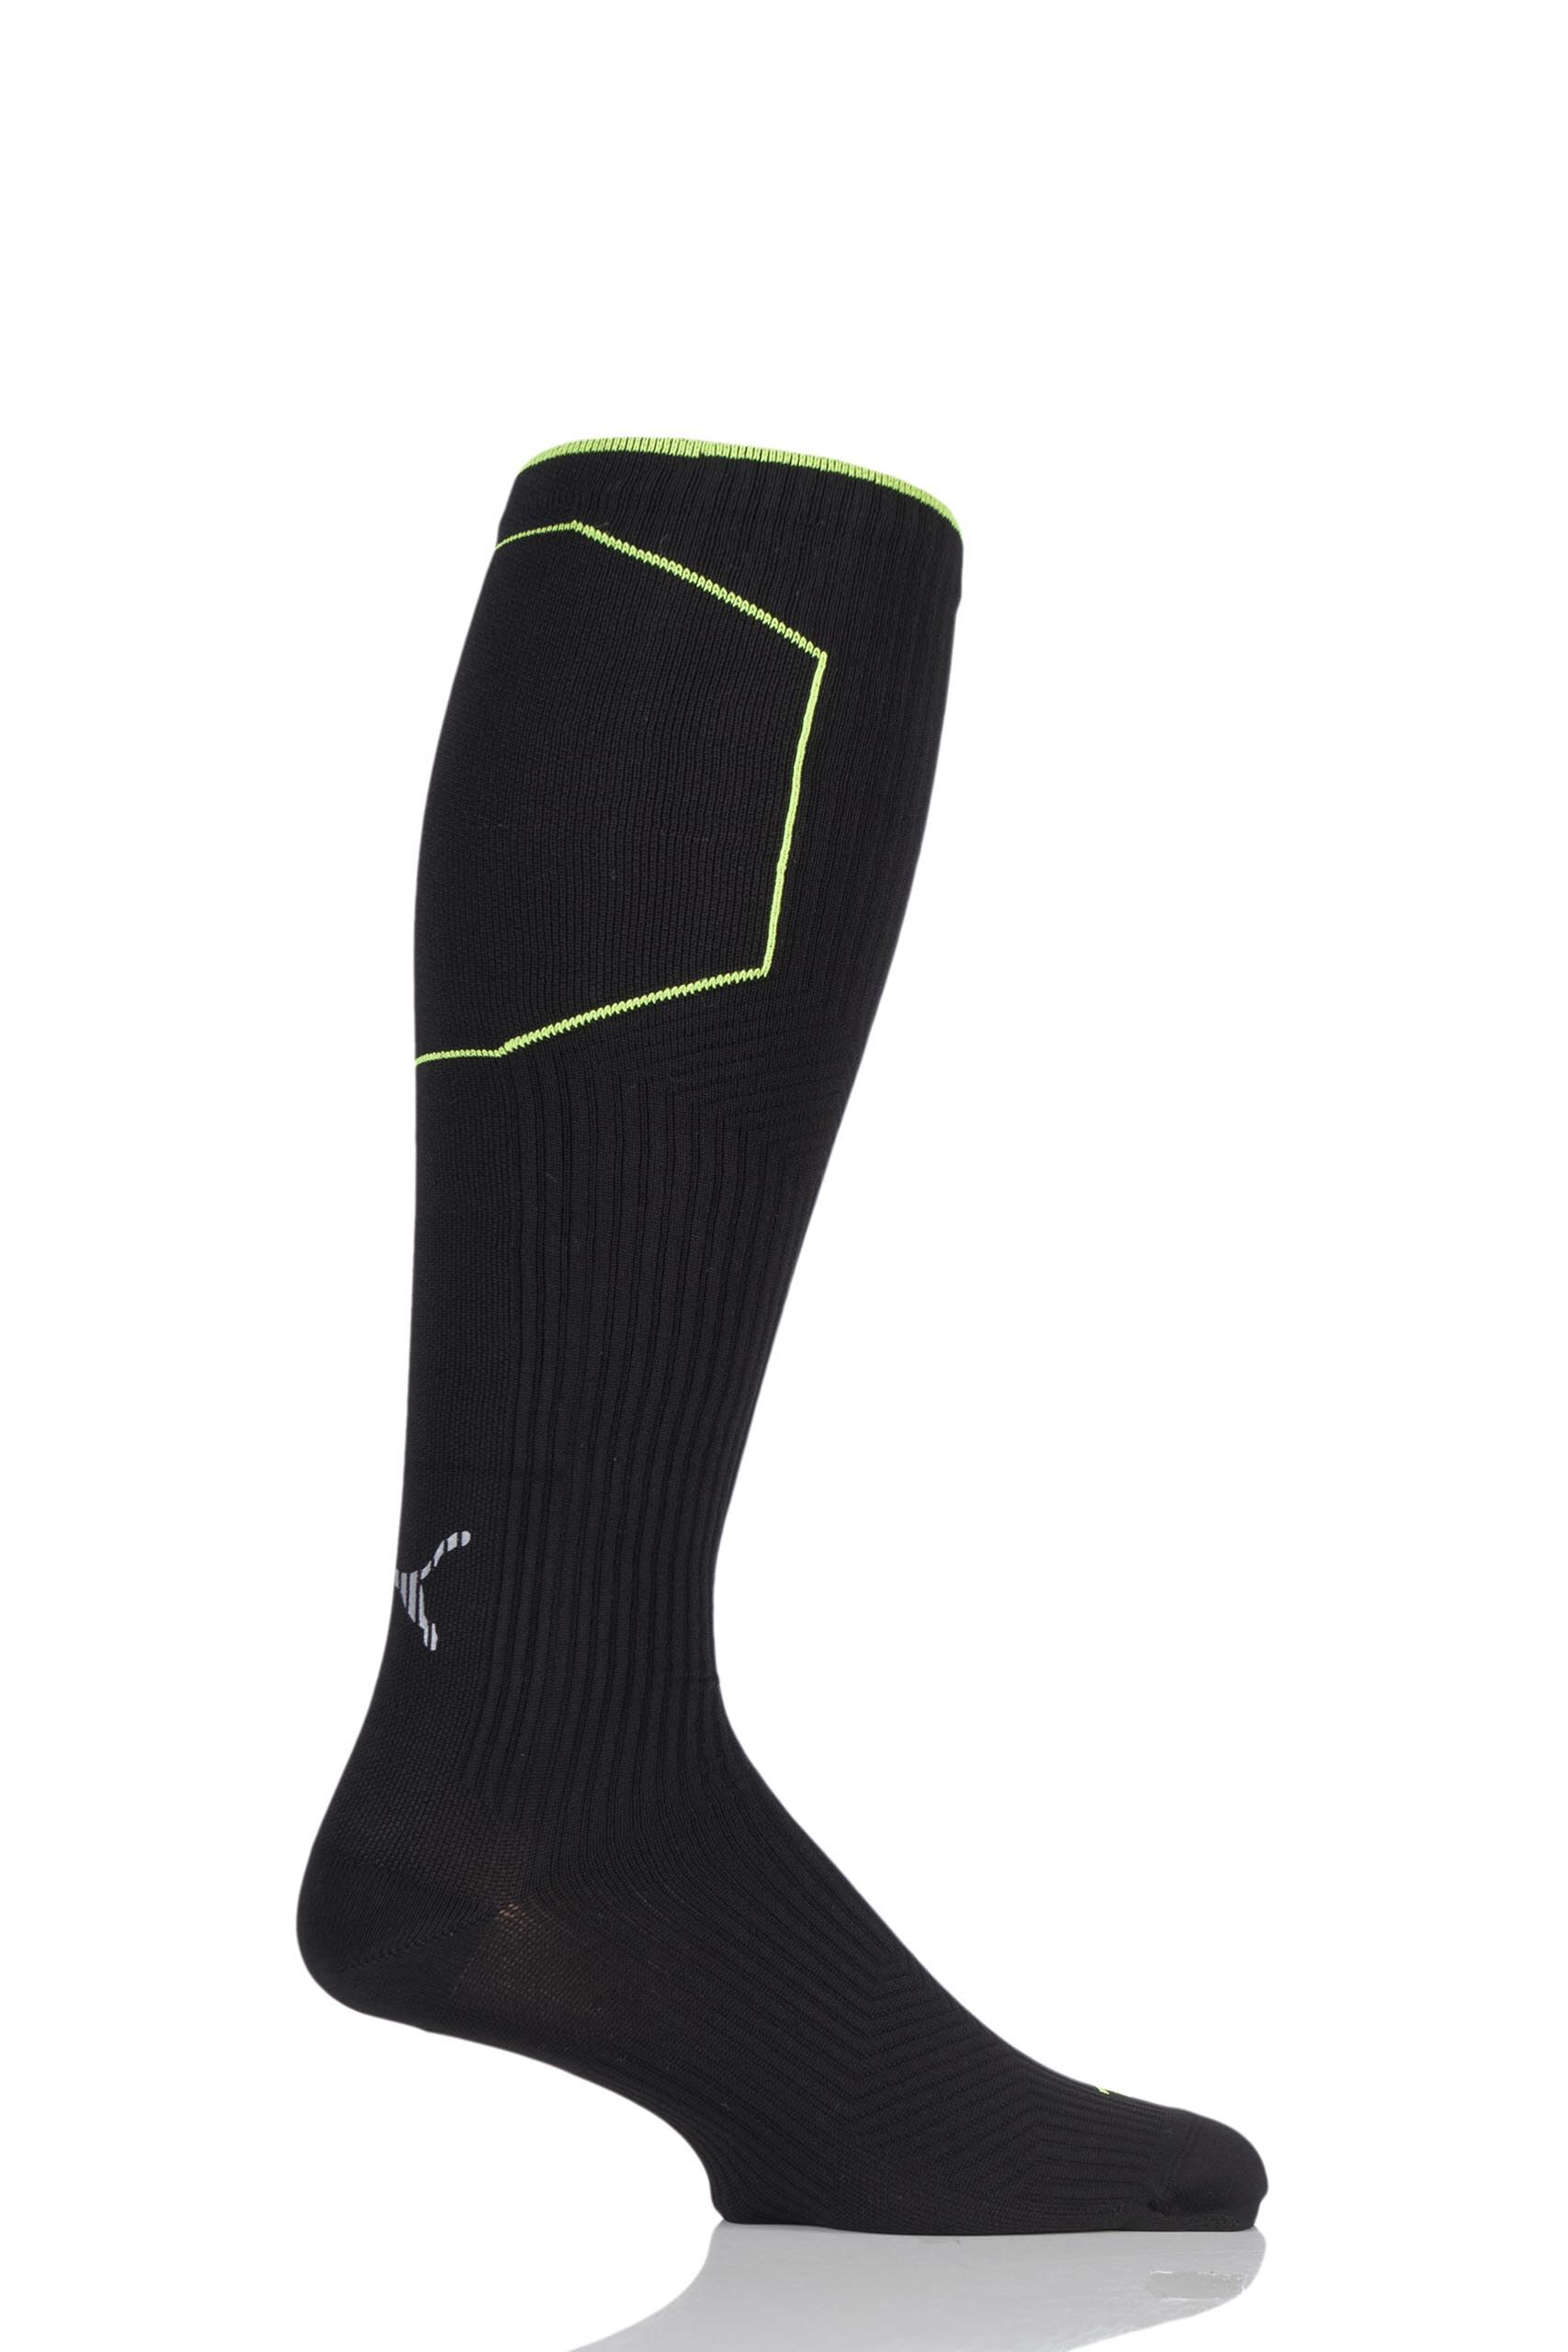 Image of 1 Pair Black Performance Running Compression Knee High Socks with Tactel Unisex 6-8 Unisex - Puma